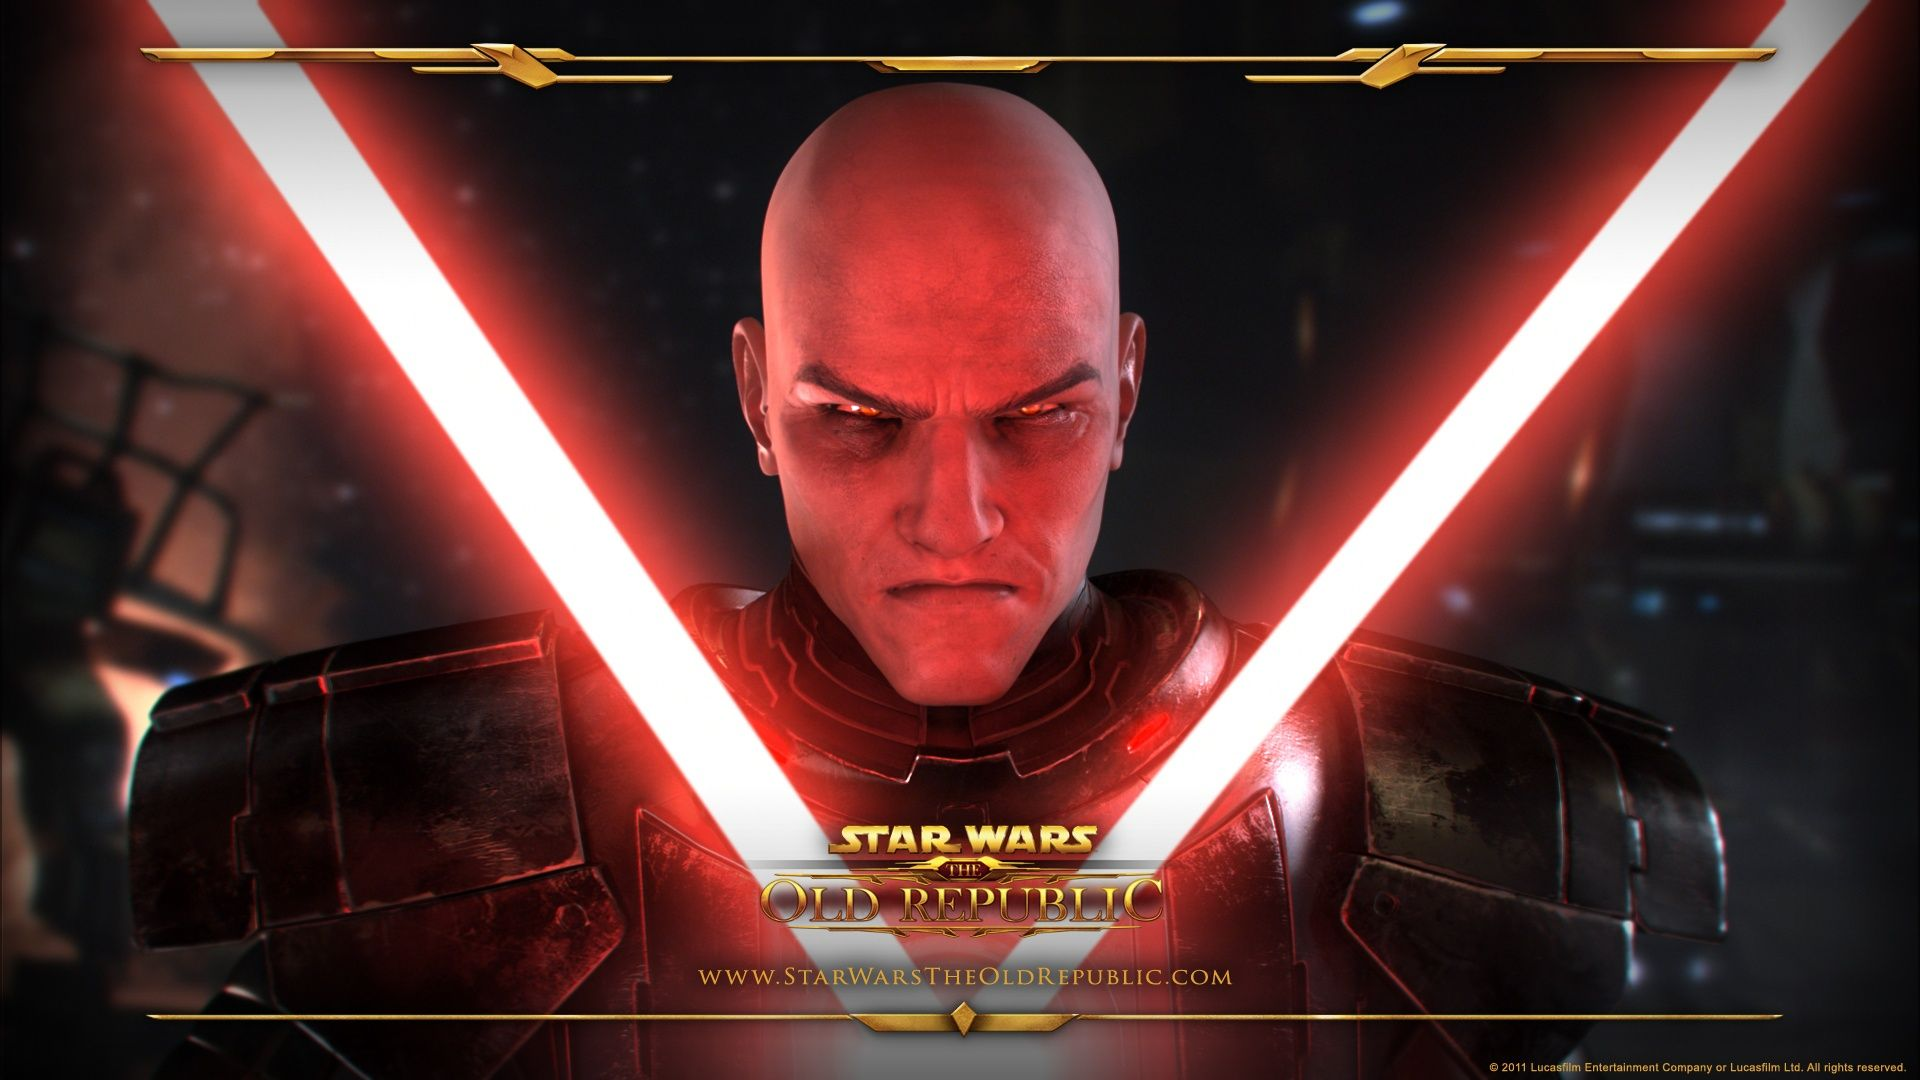 Swtor Wallpaper Swtor Starwars Star Wars The Old The Old Republic Star Wars Games